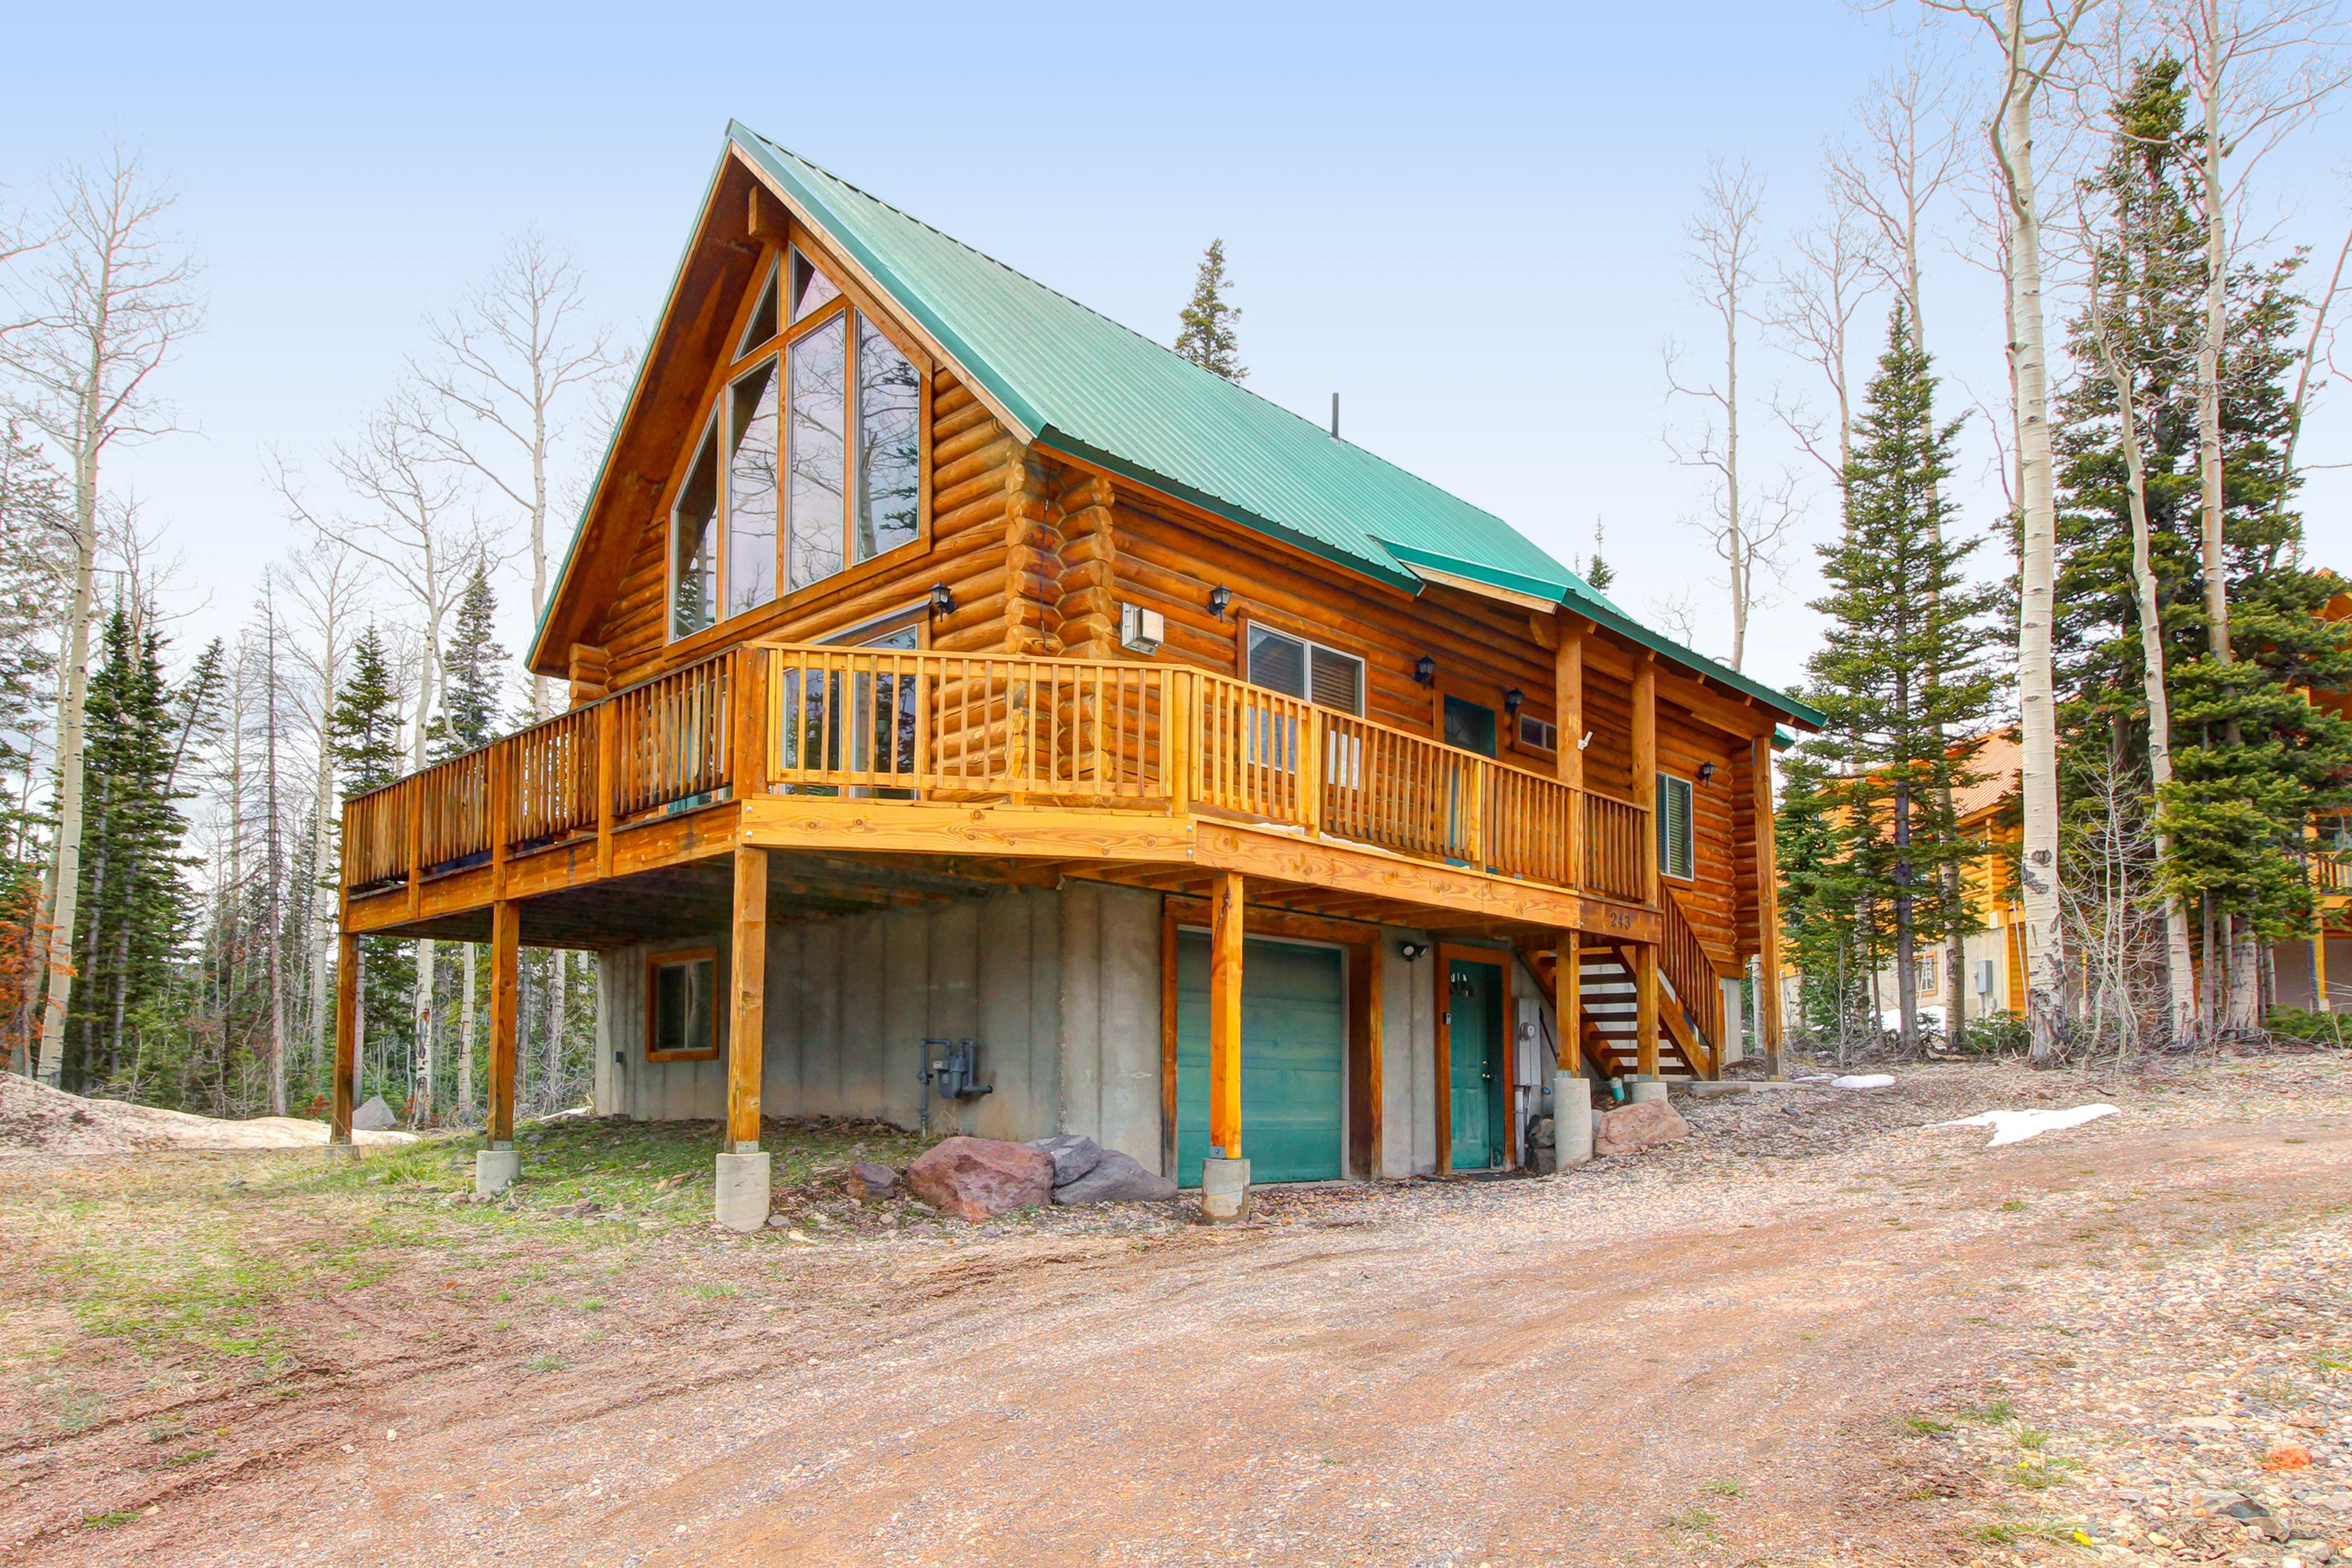 orange season ski save brian travel rentals cabins mammothchairlifts utah register county cheapo this head ways cabin to